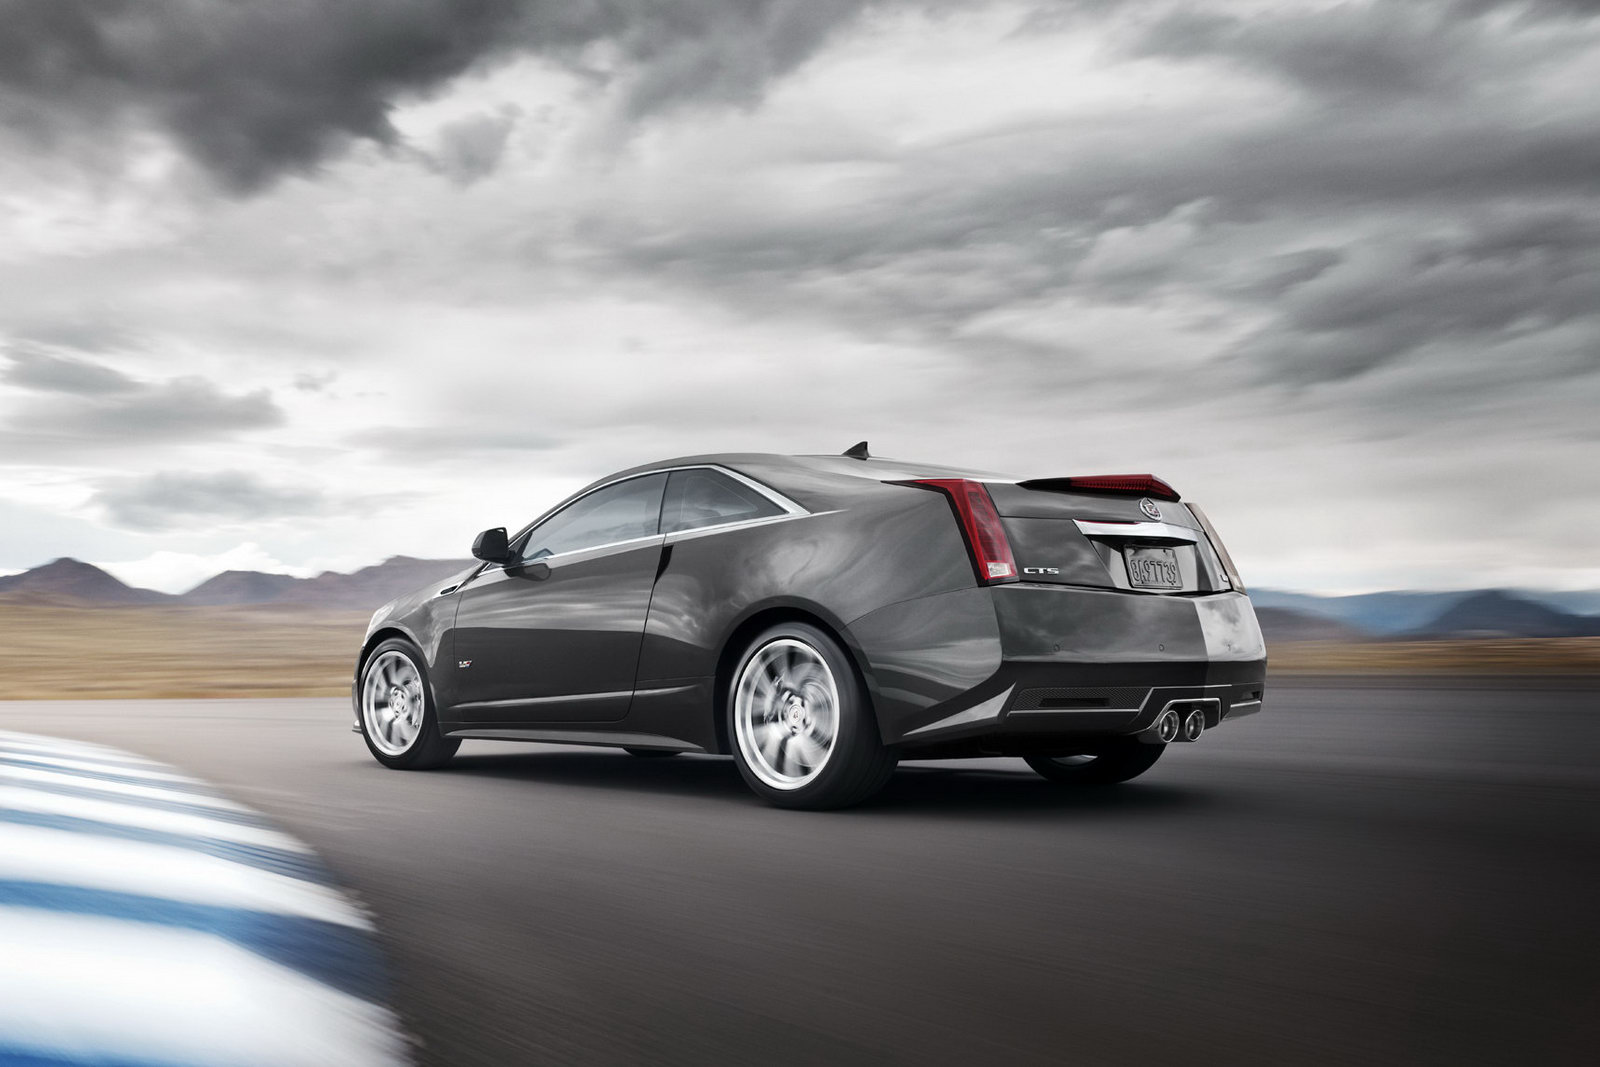 2010 Cadillac CTS Coupe Concept photo - 1